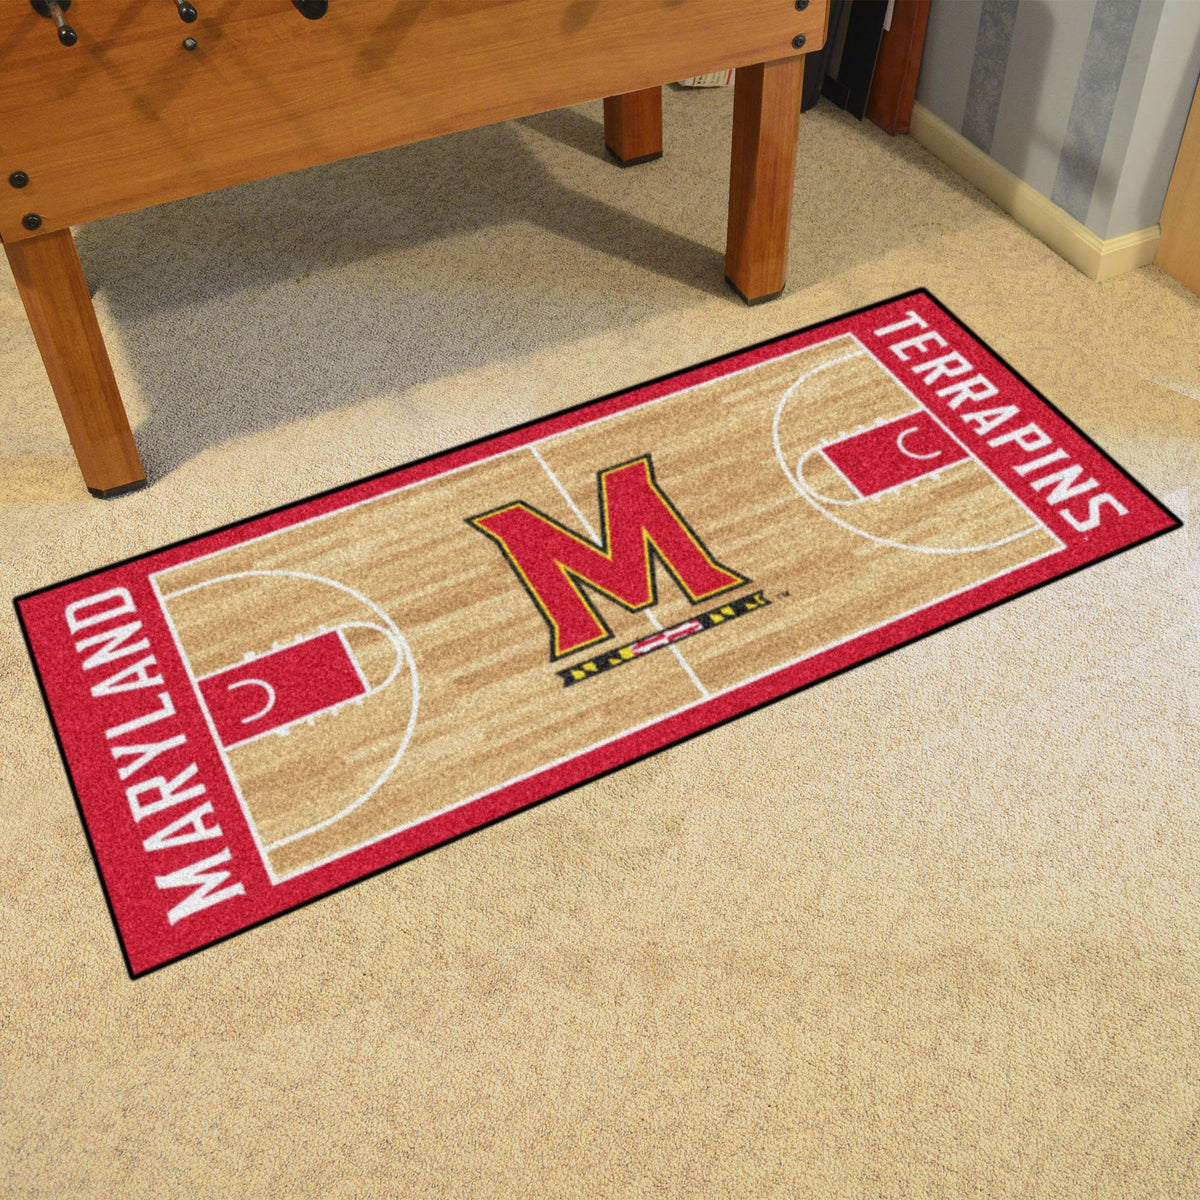 Collegiate - NCAA Basketball Runner Collegiate Mats, Rectangular Mats, NCAA Basketball Runner, Collegiate, Home Fan Mats Maryland